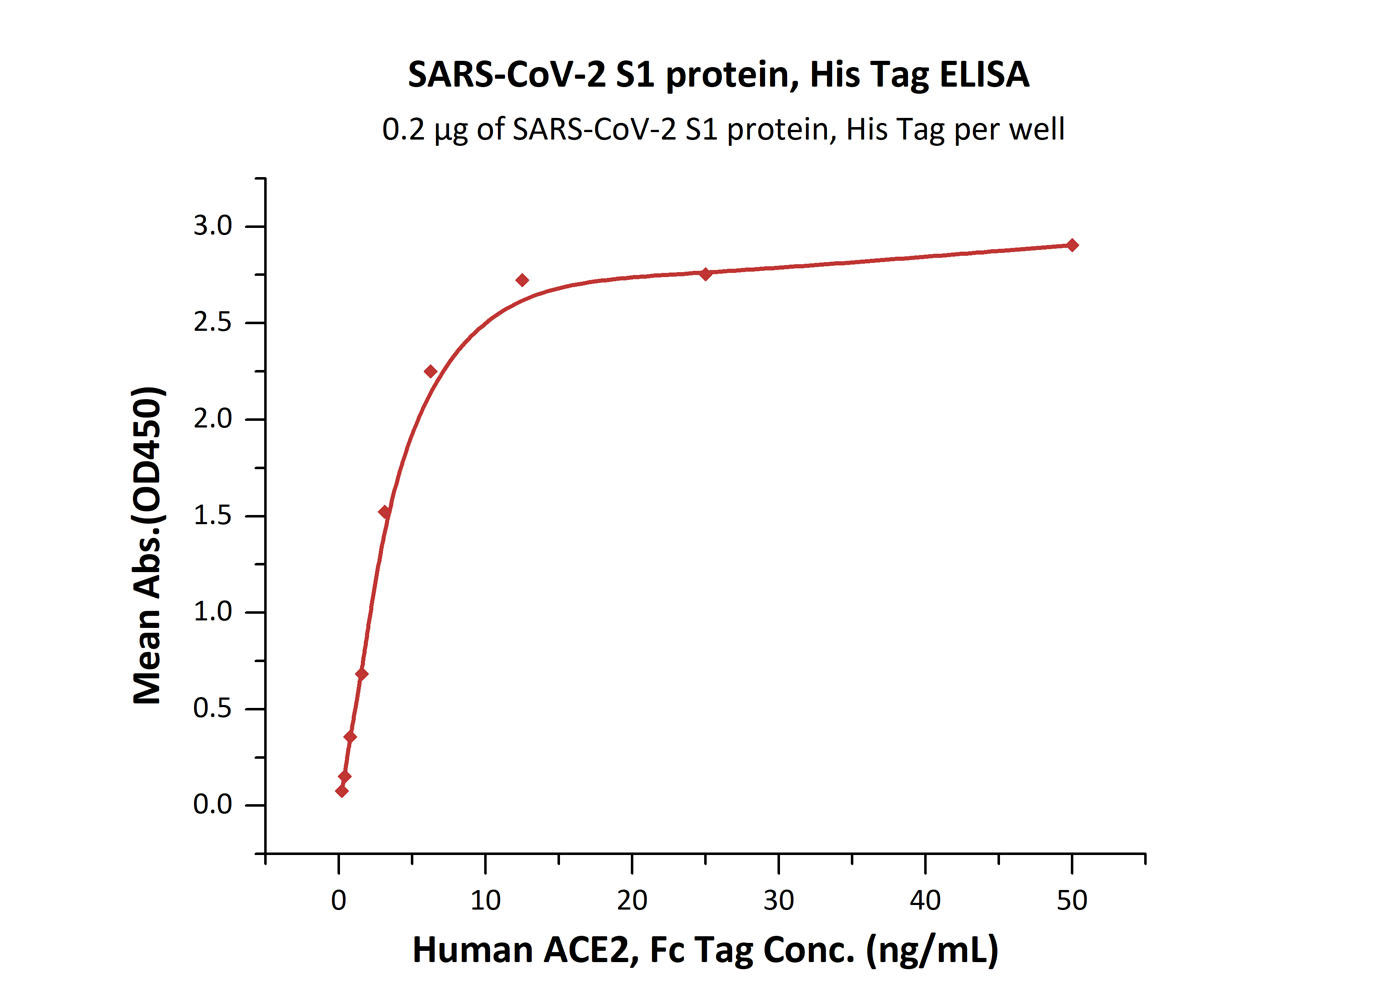 SARS-CoV-2 S1 protein, His TagSARS-CoV-2 S1 protein, His Tag (Cat. No. S1N-C52H3) ELISA bioactivity